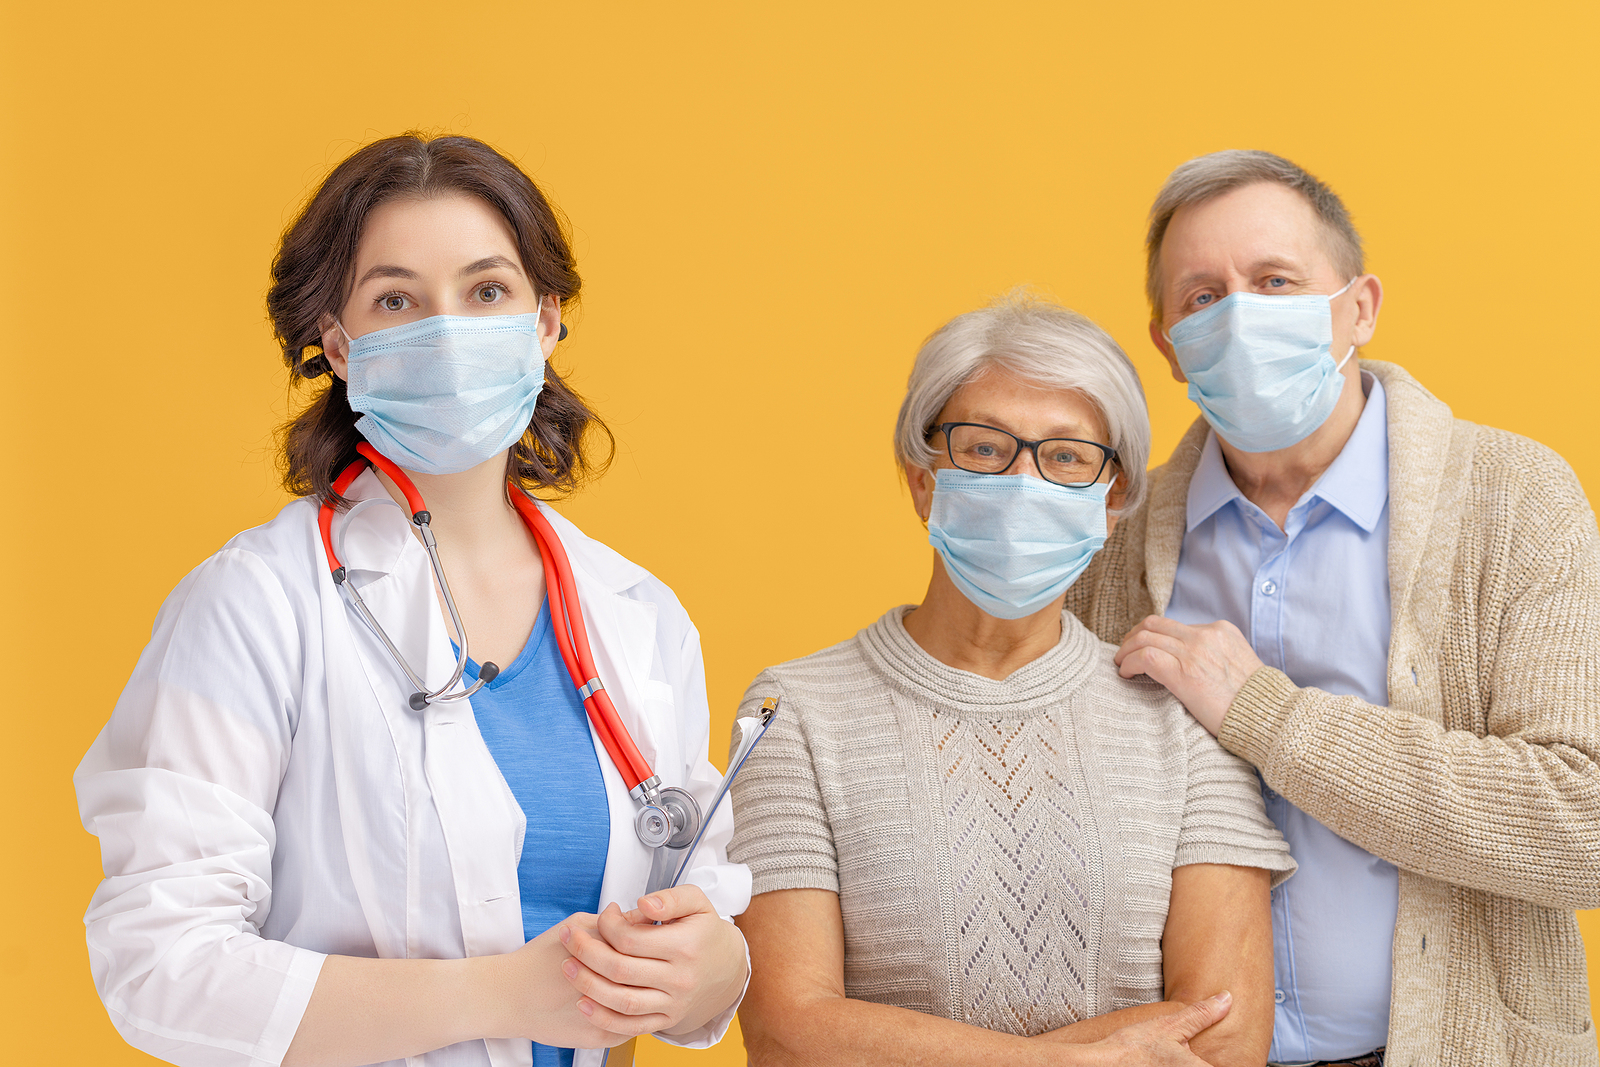 Wearing a face mask doesn't prevent Covid infection